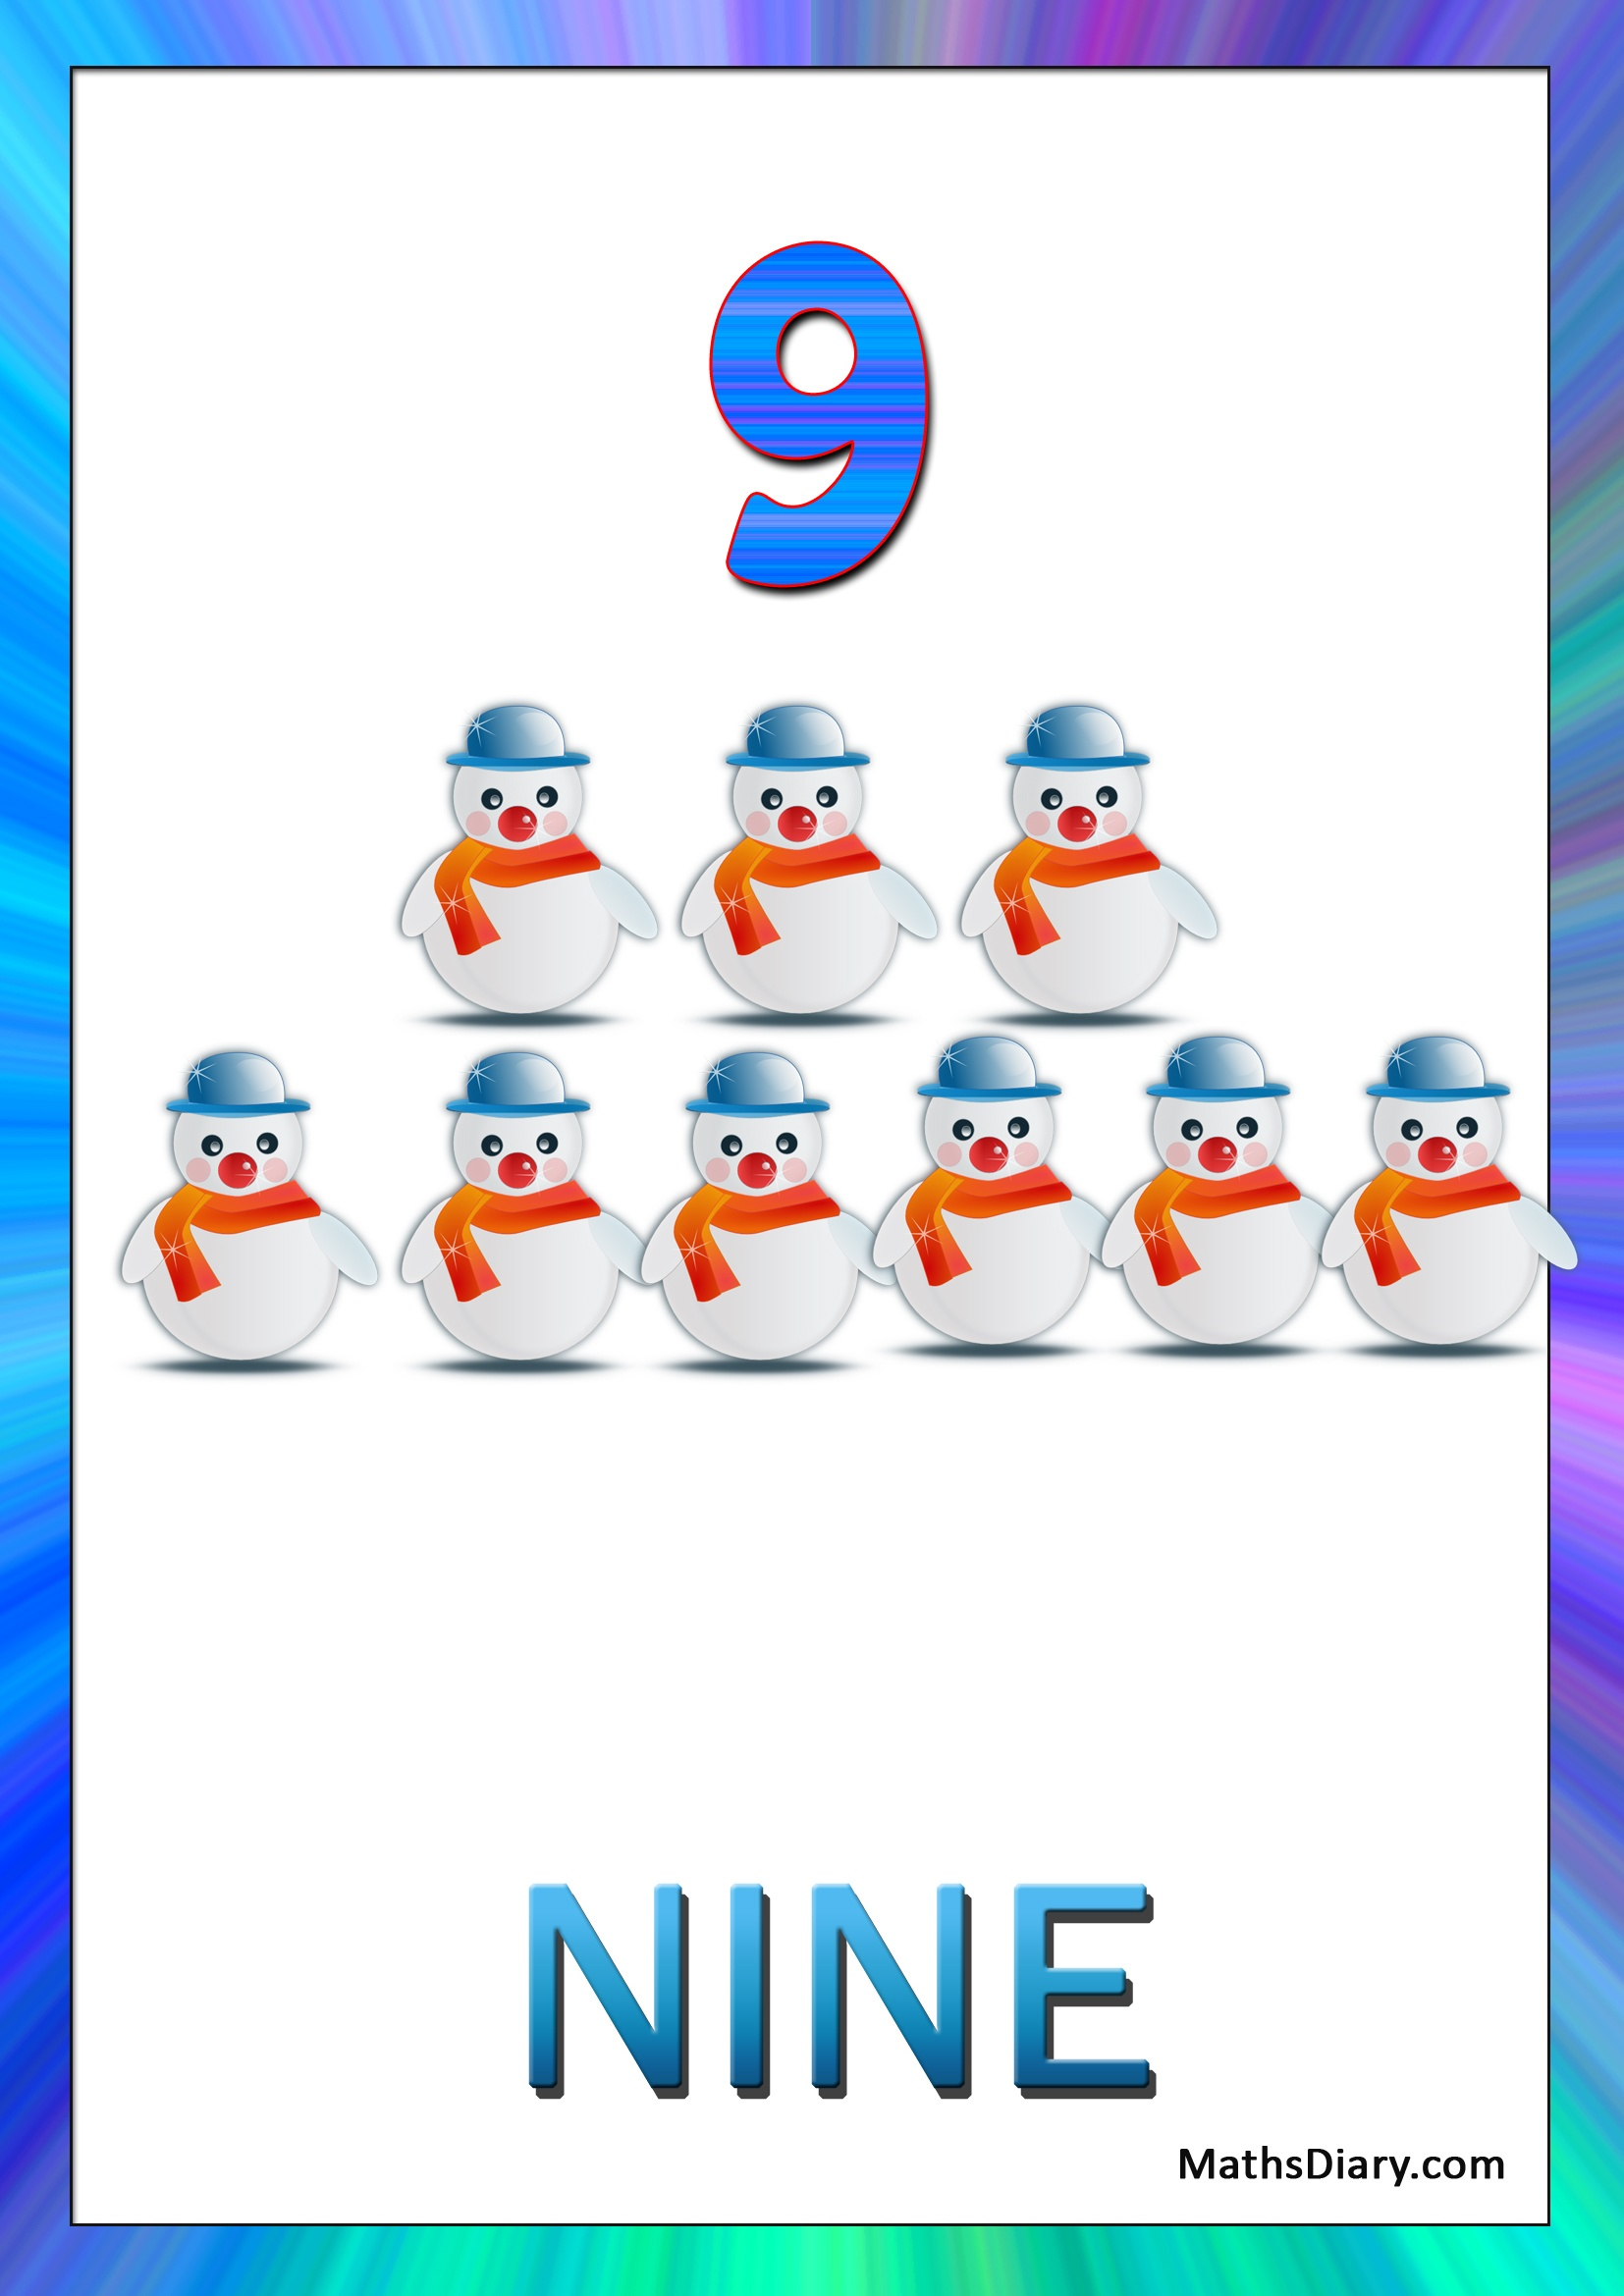 Learning Counting And Recognition Of Number 9 Worksheets Level 1 Help Sheets Part 4